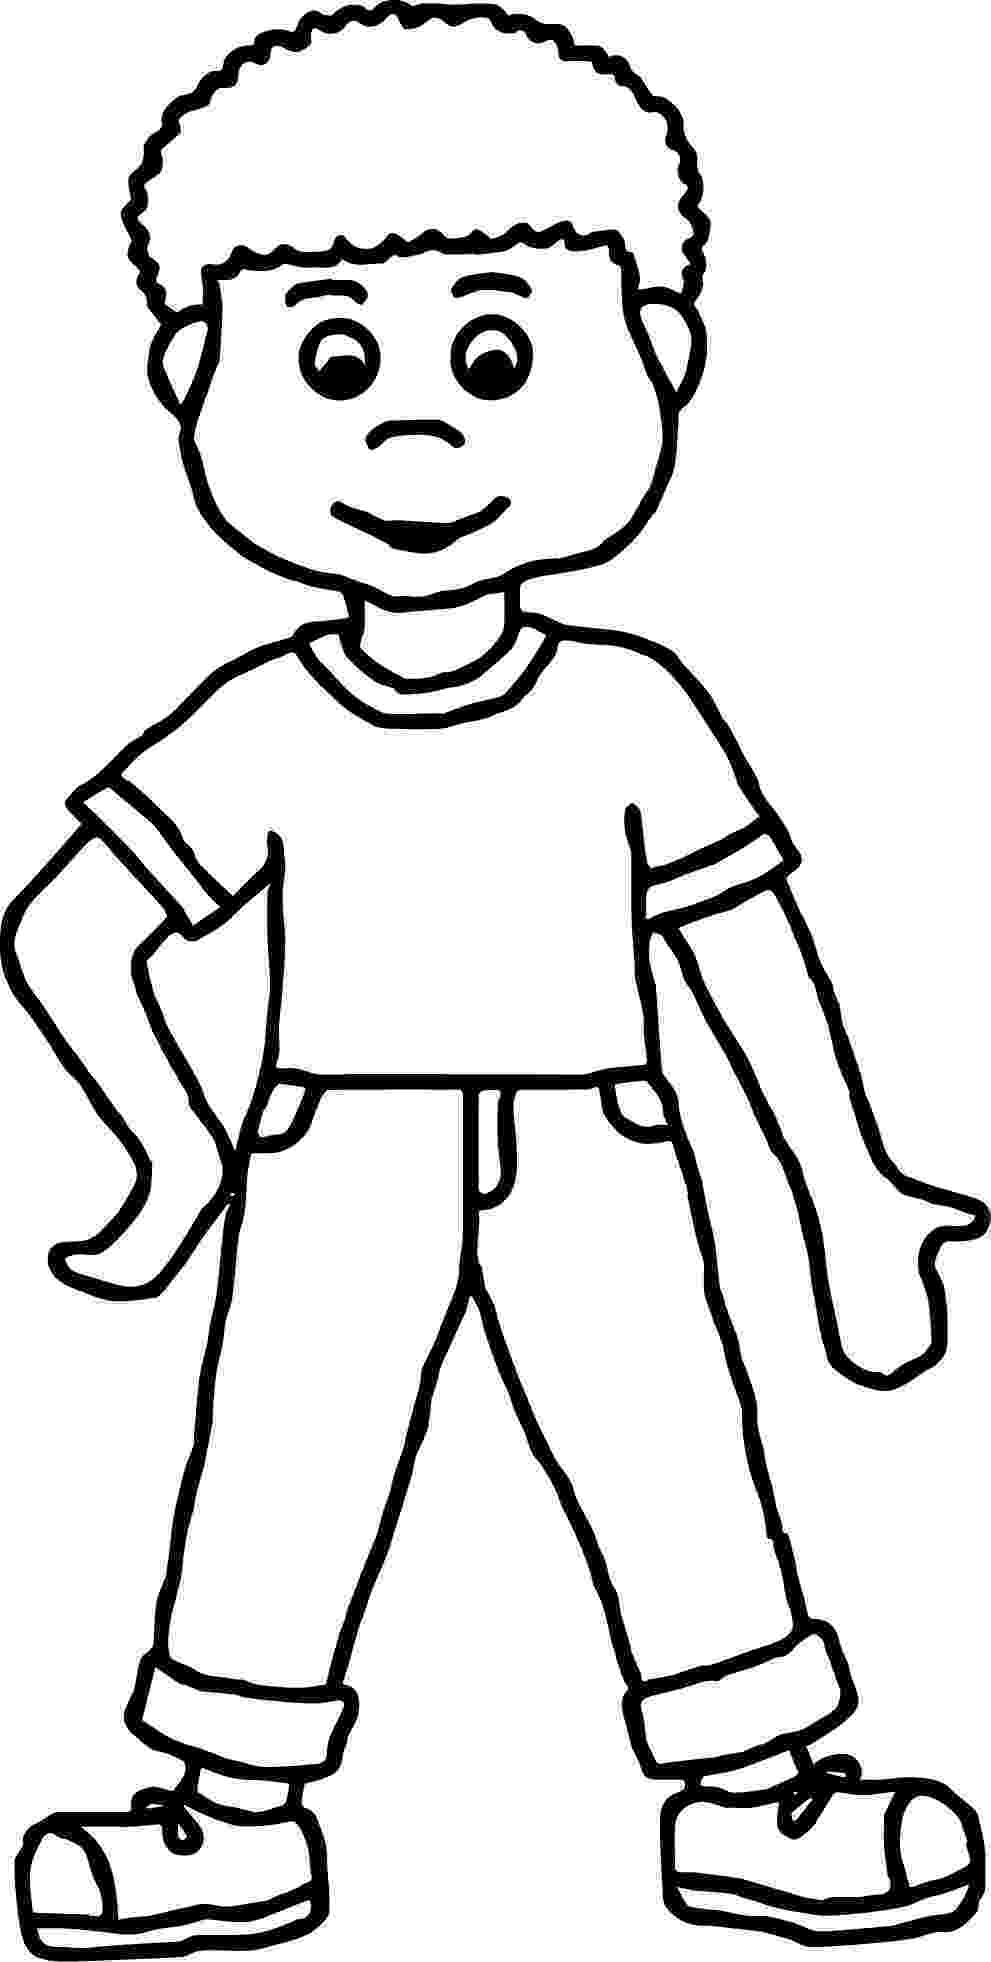 picture of a boy to color cartoon boy coloring page wecoloringpagecom to boy color picture of a